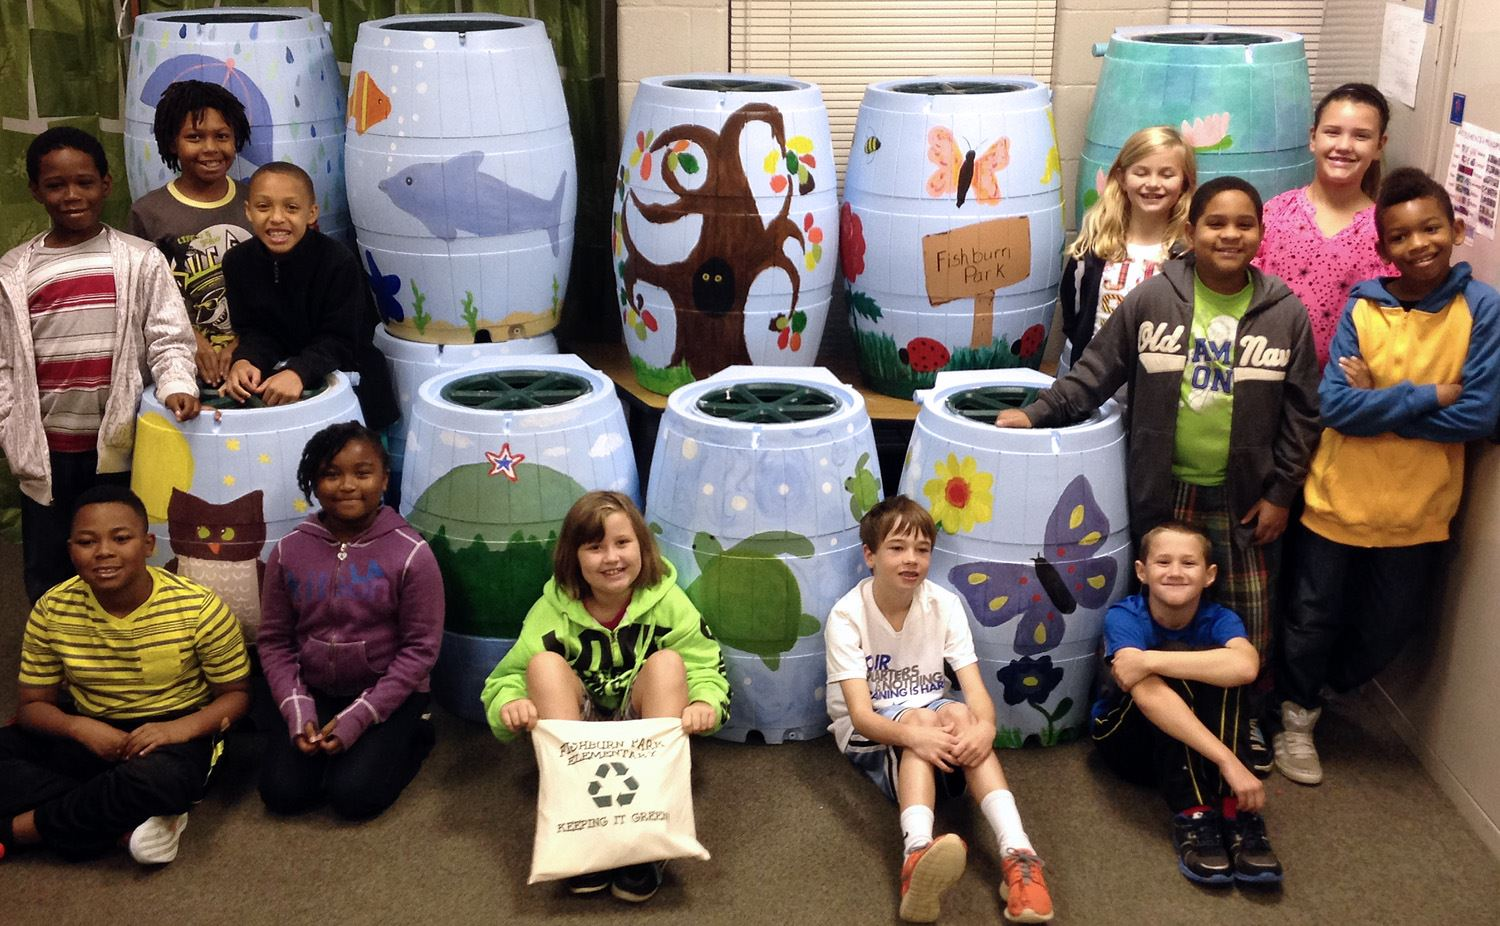 2014-10-13 Painted Rainbarrels with Students edit Web 1